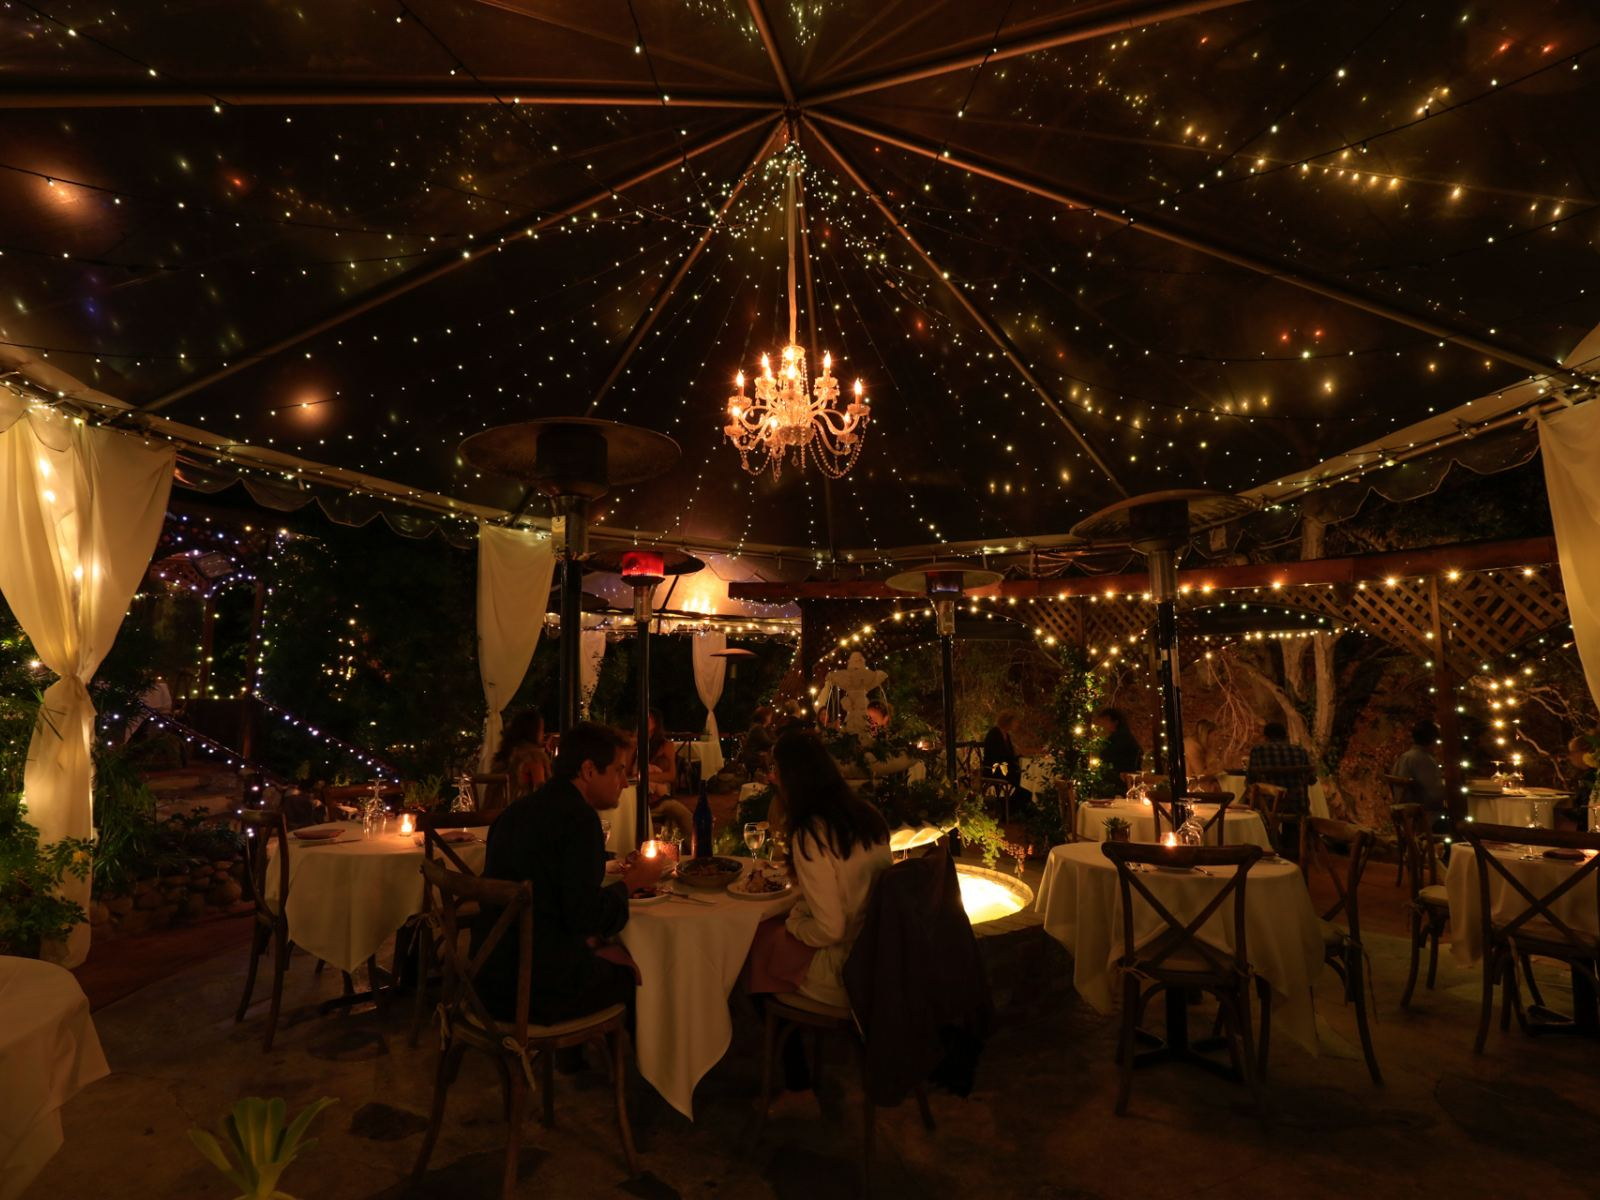 Diner Romantique Au Lit the most romantic restaurants in los angeles | discover los